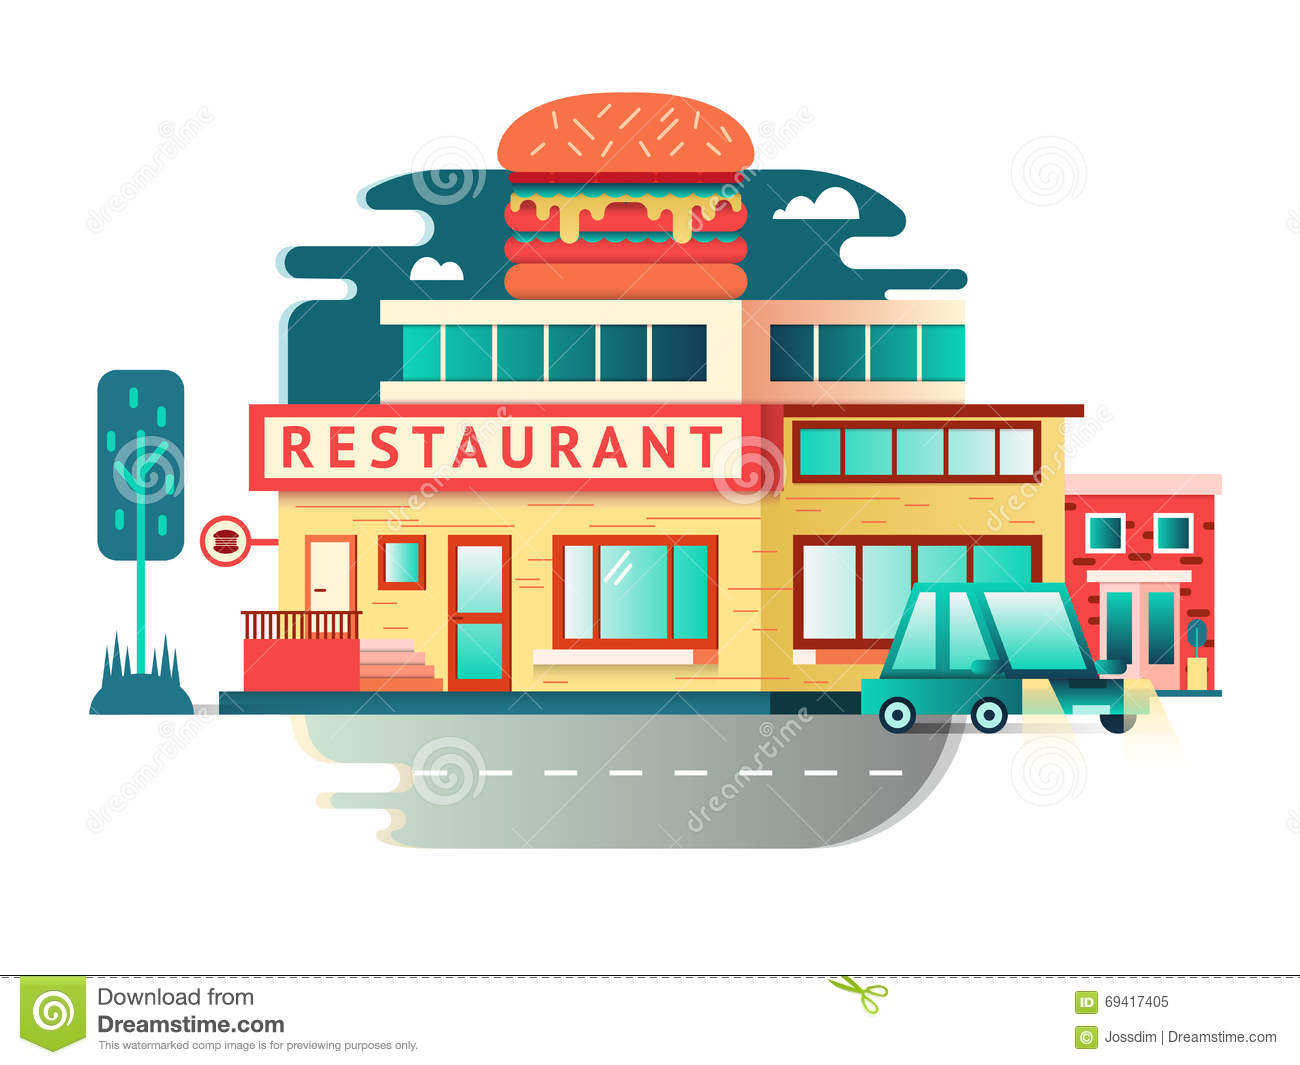 For restaurant pictures graphics illustrations clipart photos - Royalty Free Vector Download Restaurant